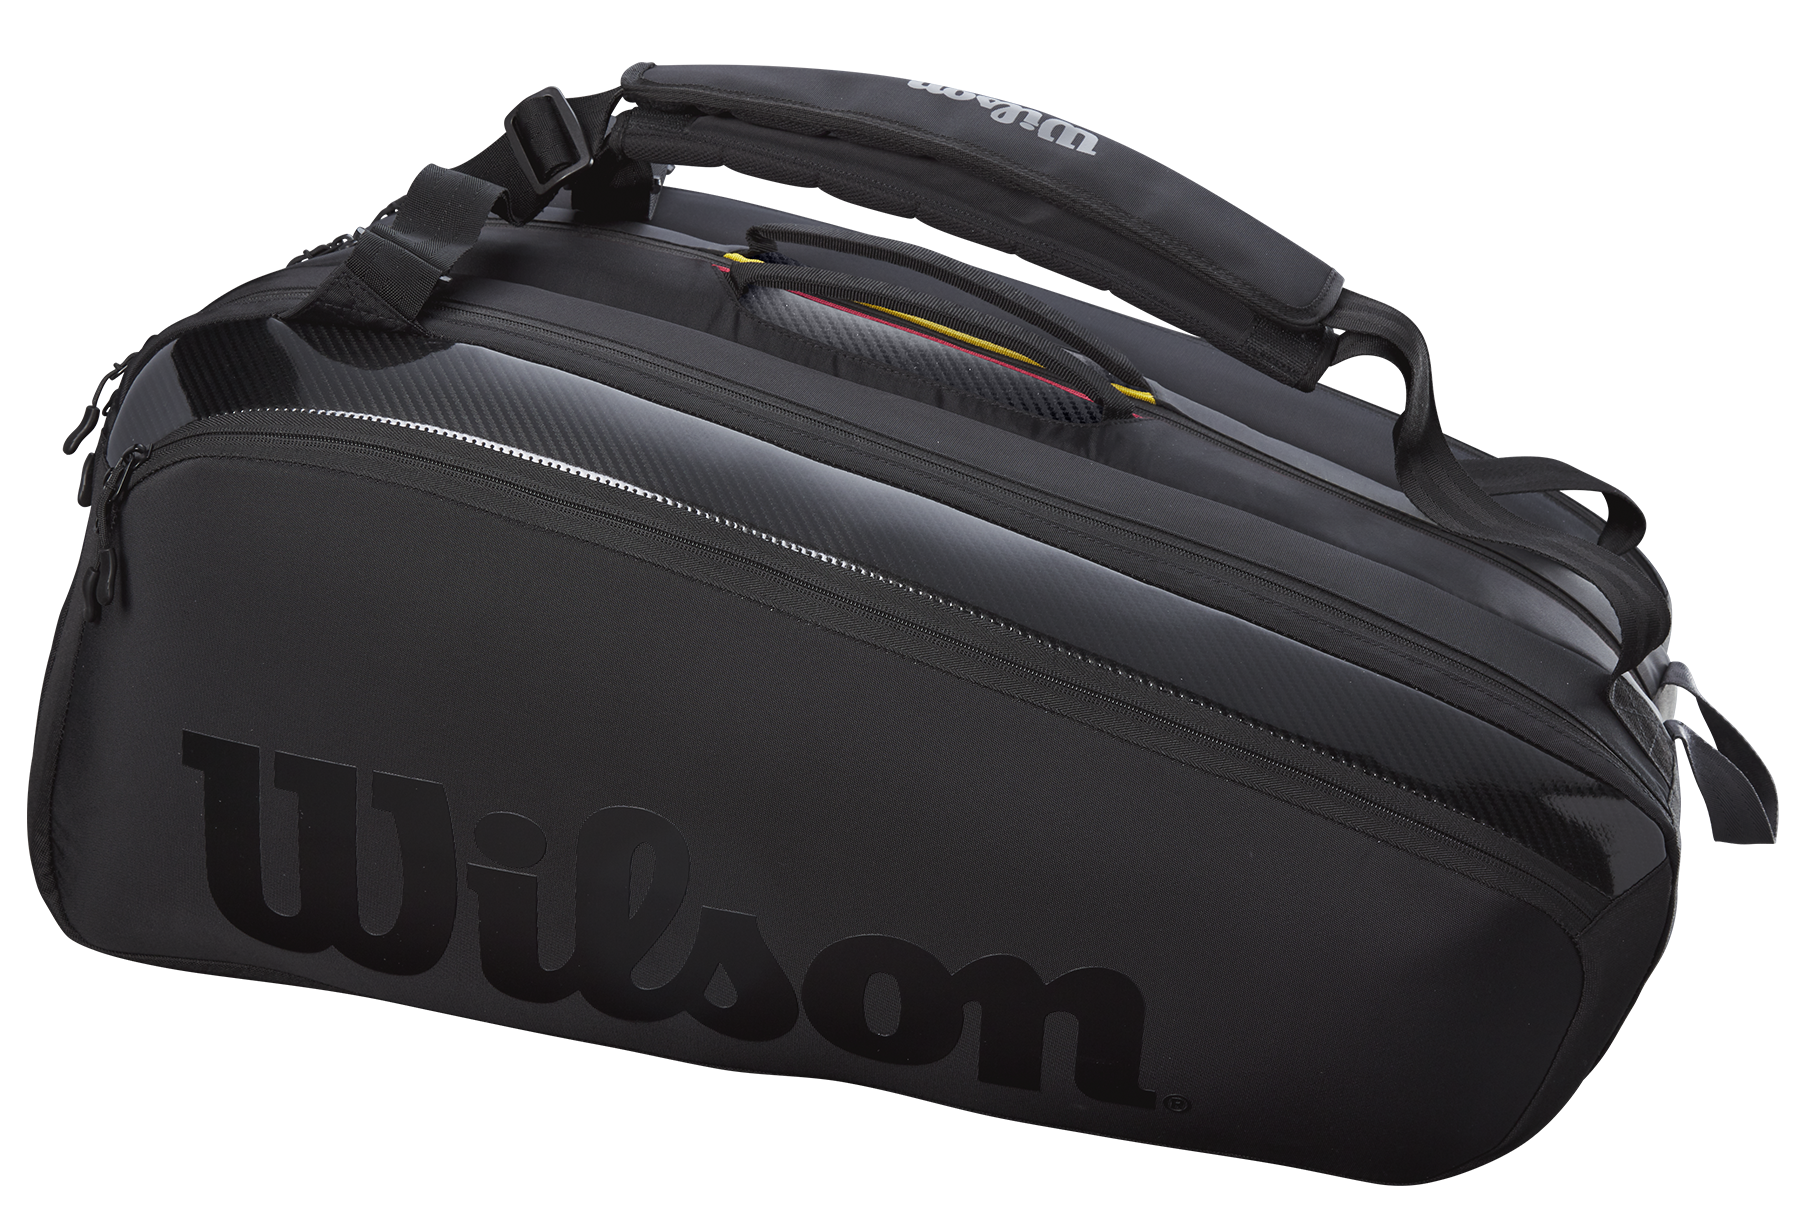 Wilson Pro Staff racket bag